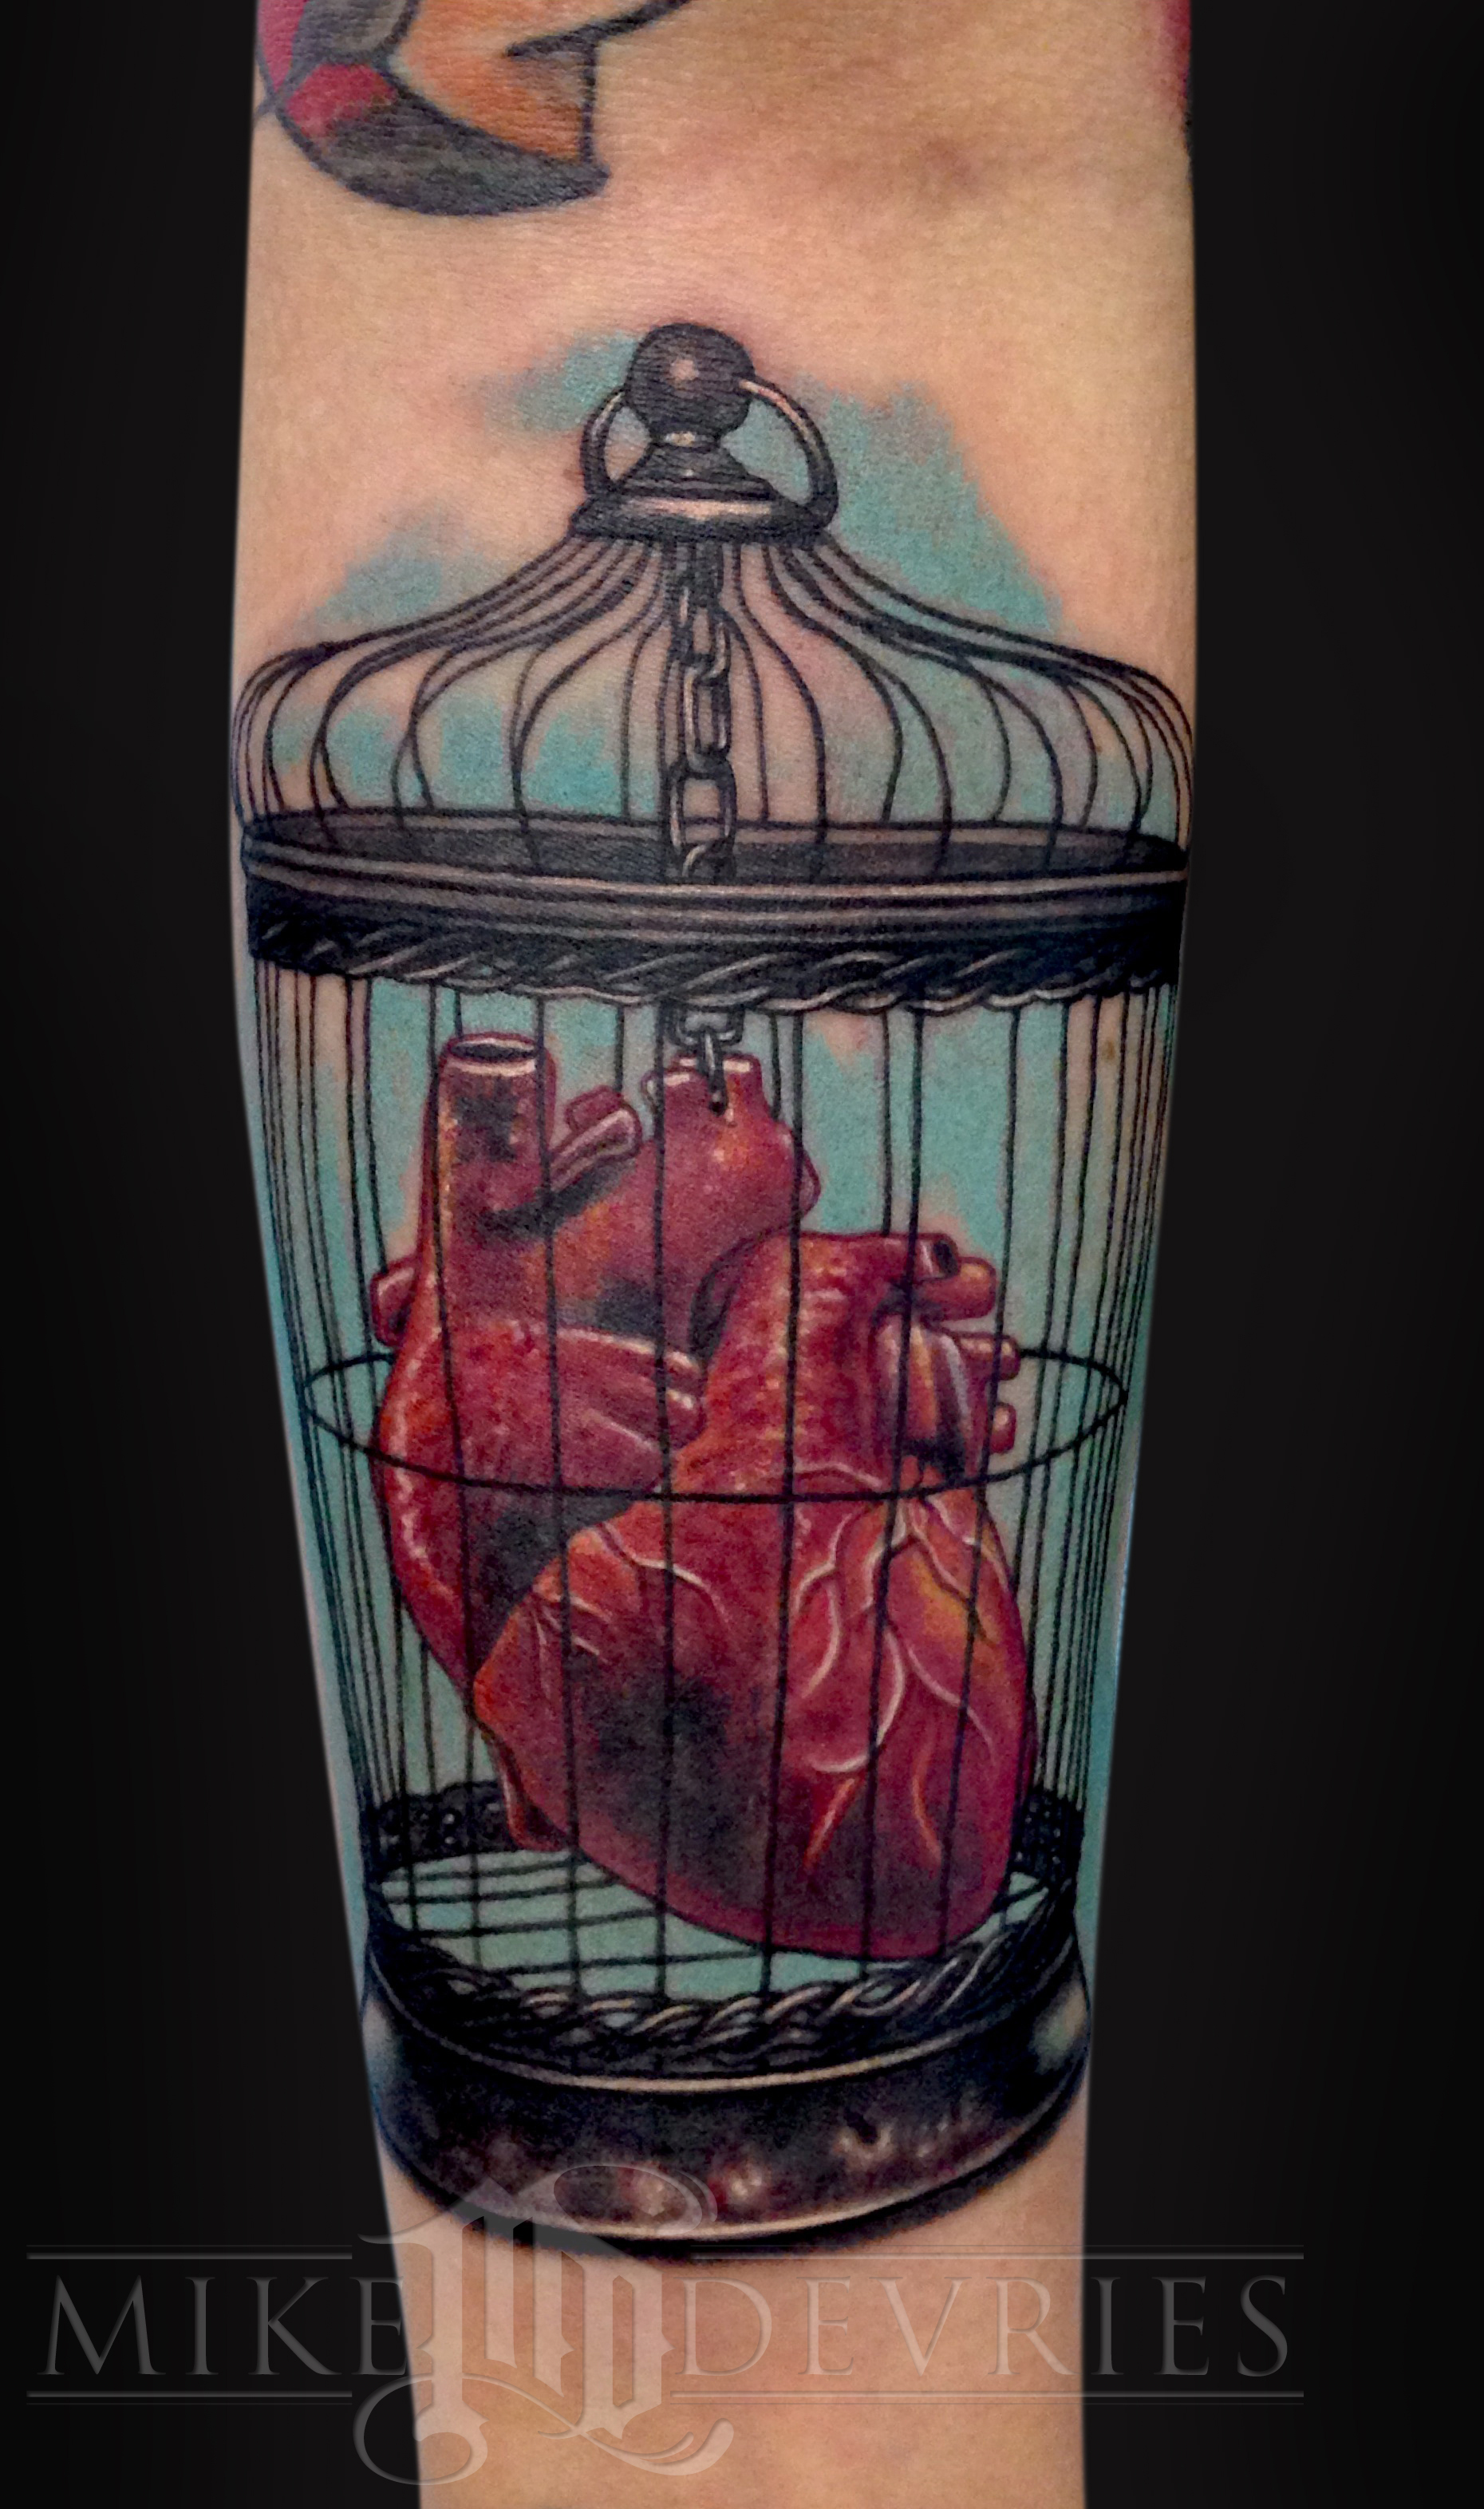 Real Heart In Birdcage Tattoo On Forearm By Mike Devries